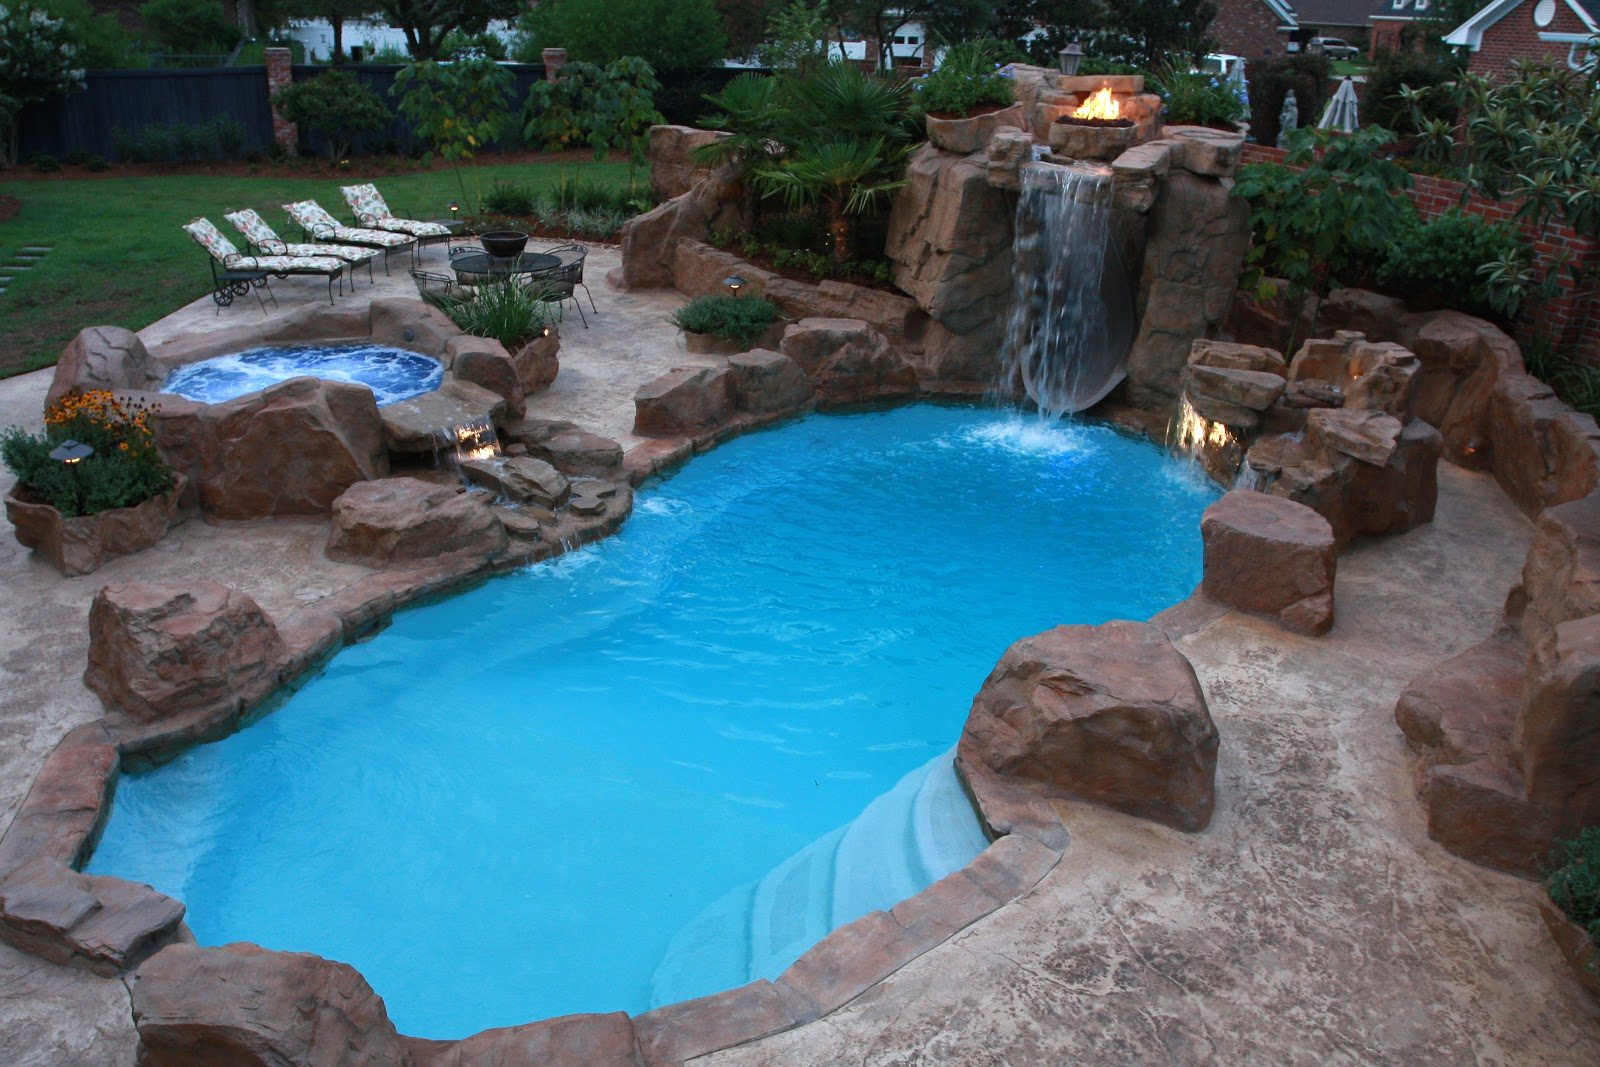 Backyard Pool Designs | Estimated Cost Of Inground Pool | Inground Swimming Pools Designs